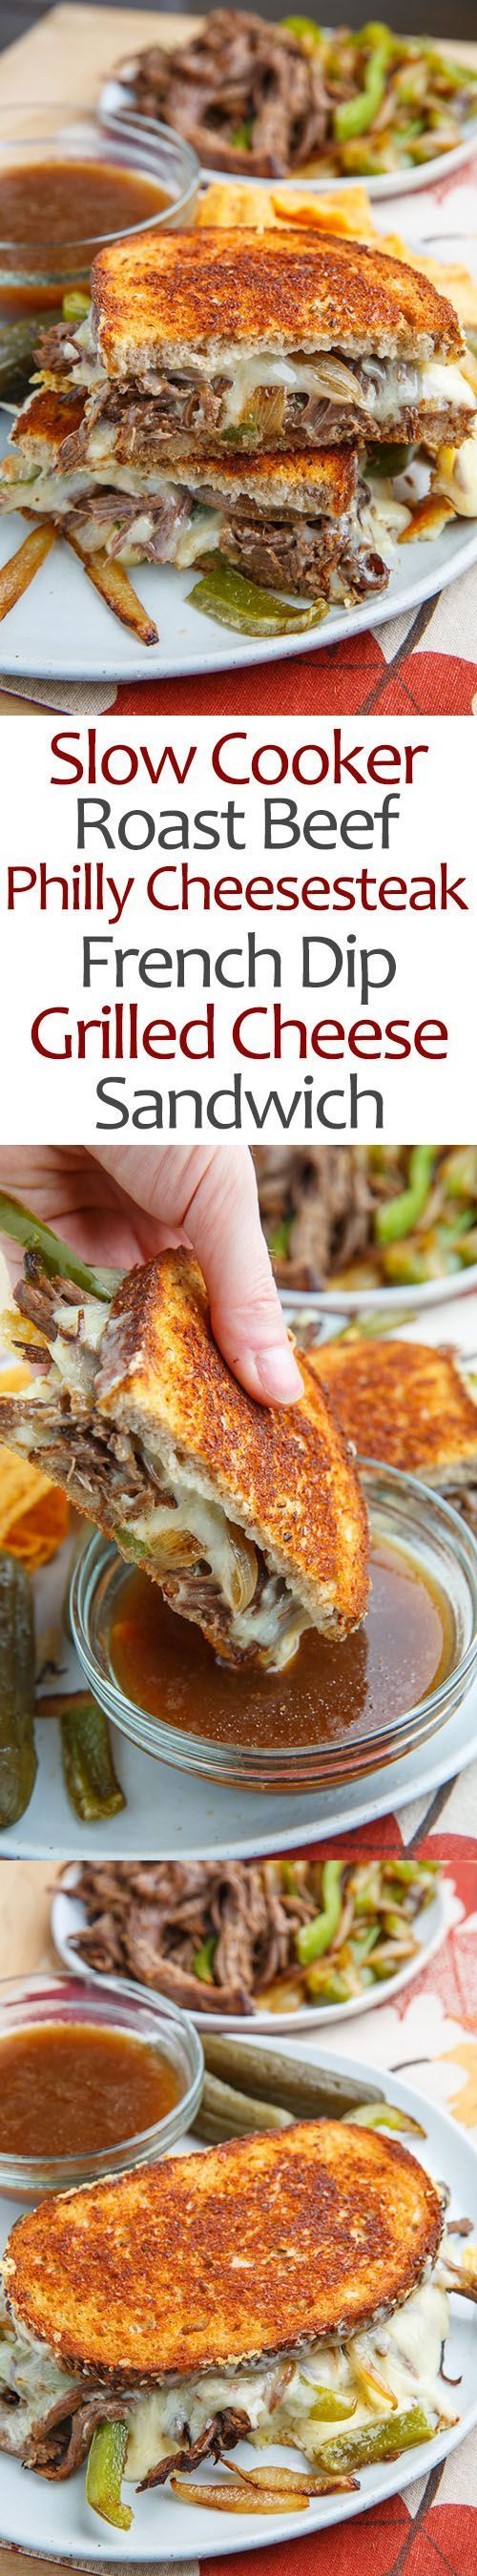 Slow Cooker Roast Beef Philly Cheesesteak French Dip Grilled Cheese Sandwich Slow Cooker Roast Beef Philly Cheesesteak French Dip Grilled Cheese Sandwich